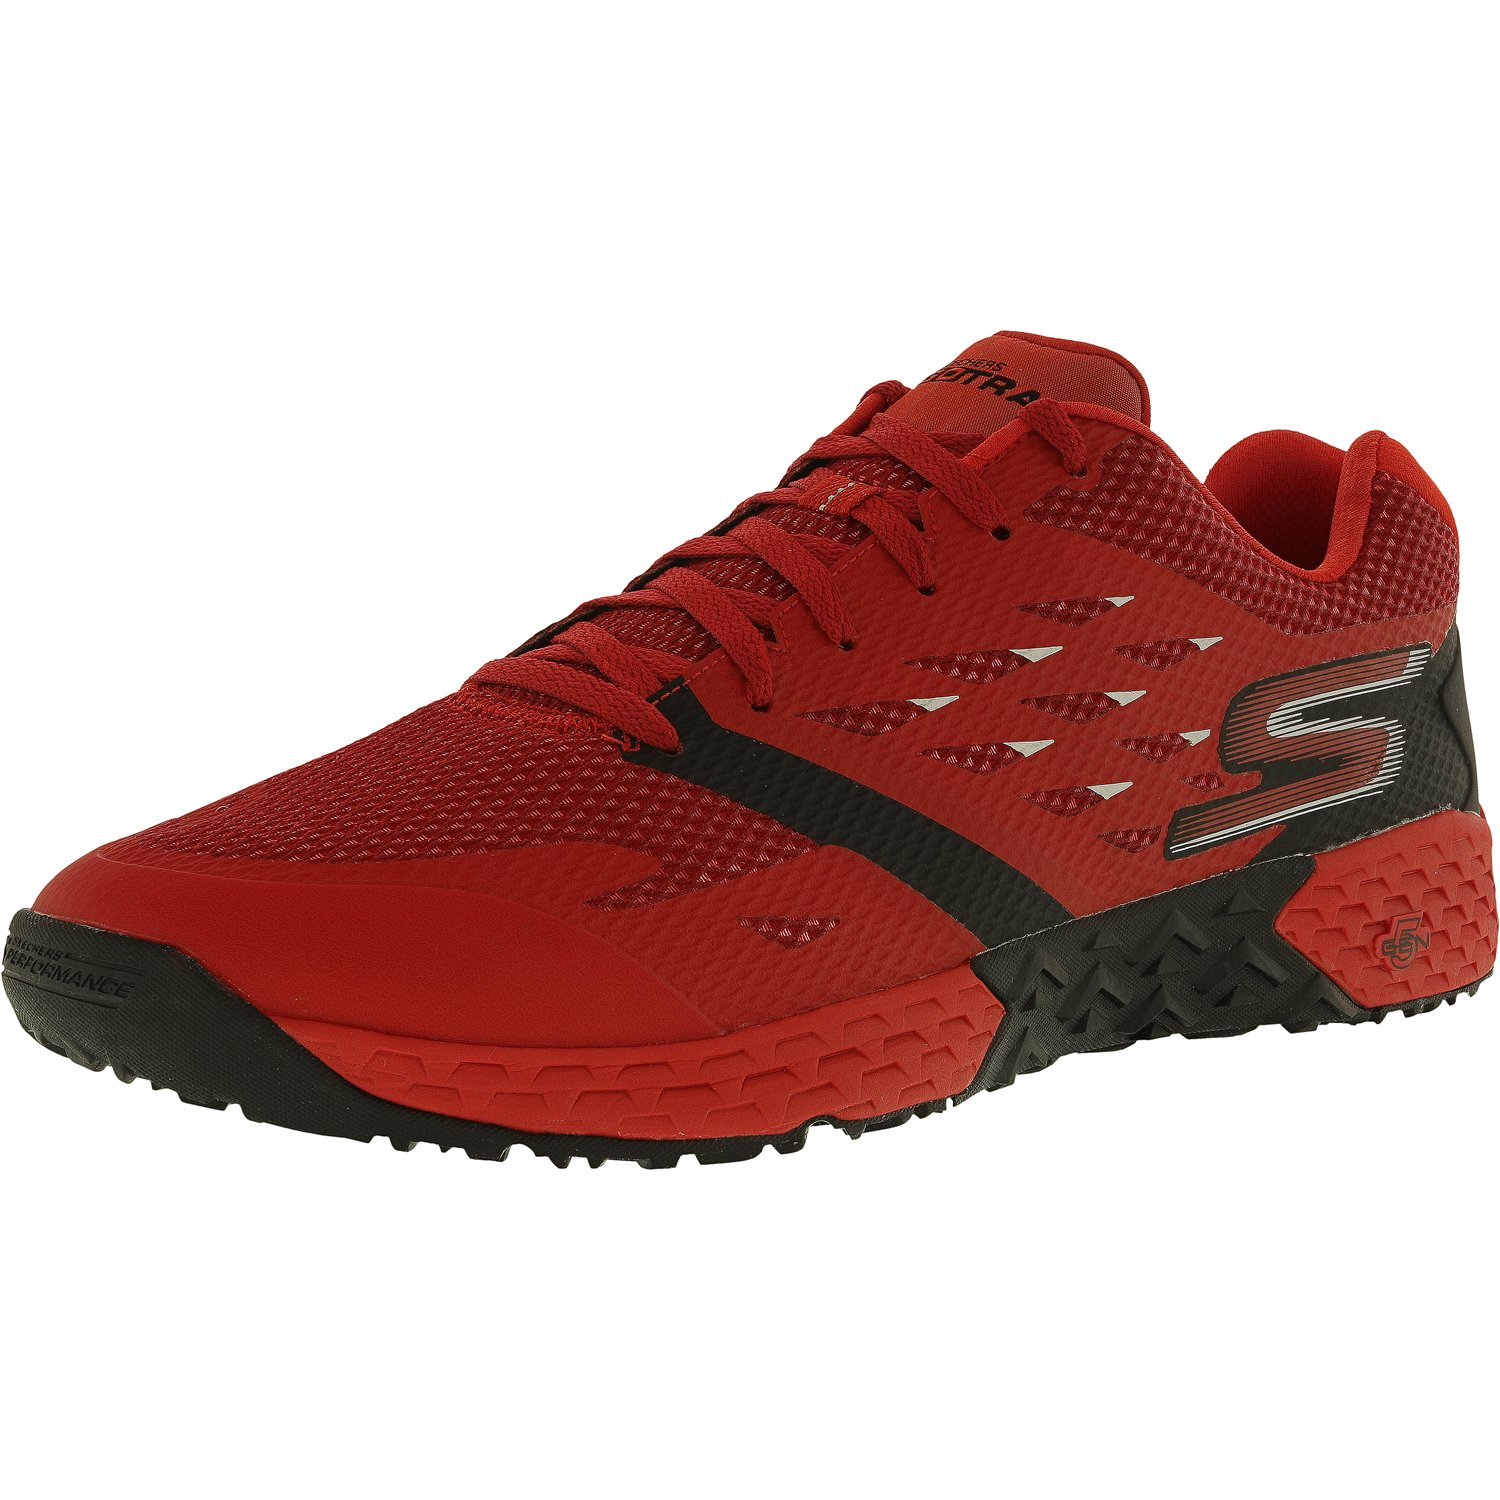 Skechers Men's Go Train-Endurance Red / Black Ankle-High Running Shoe - 9M